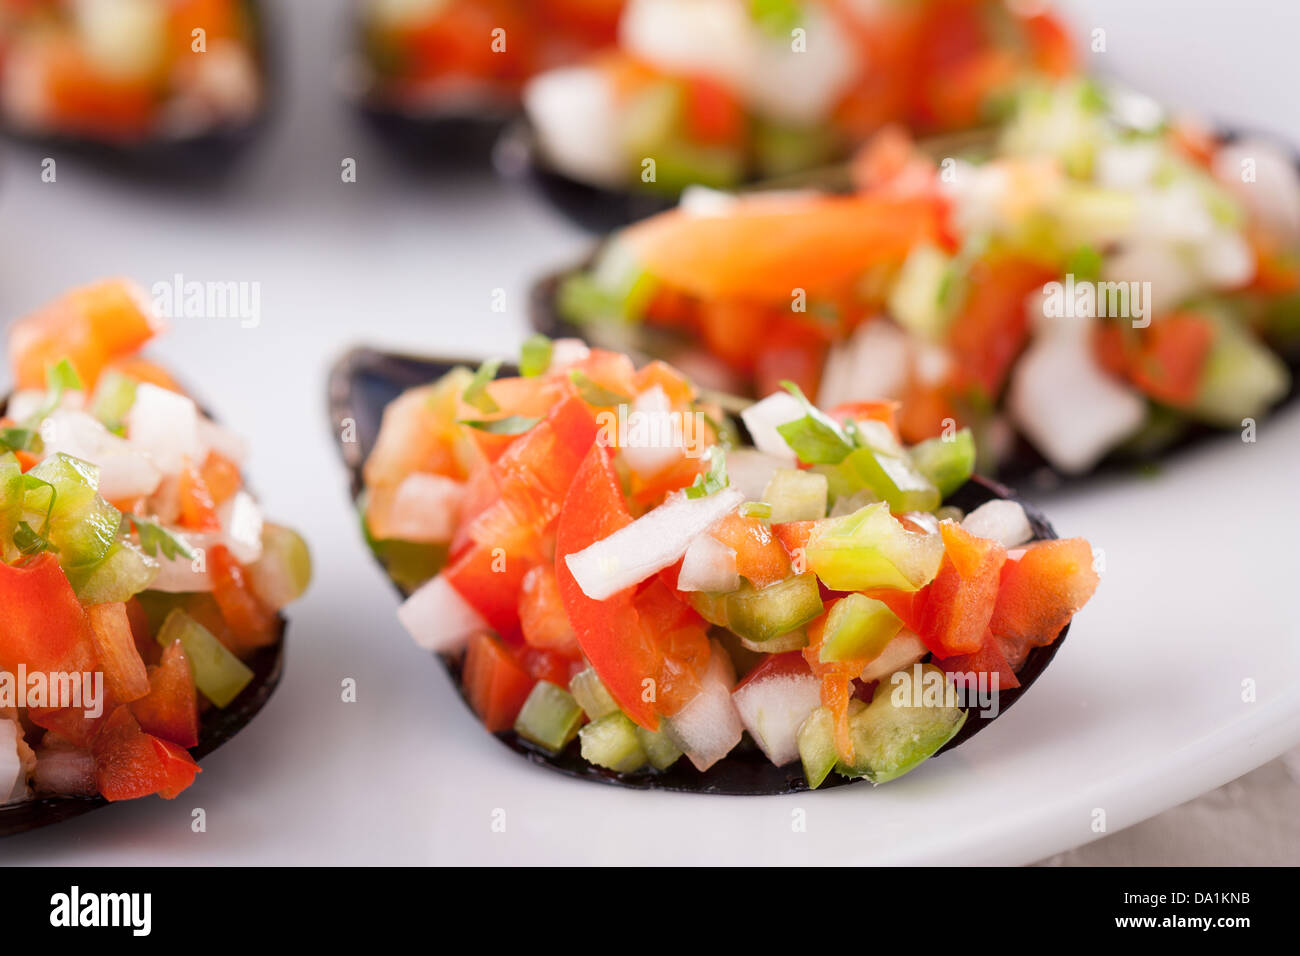 Steamed mussels with vegetable mince on a white dish Stock Photo